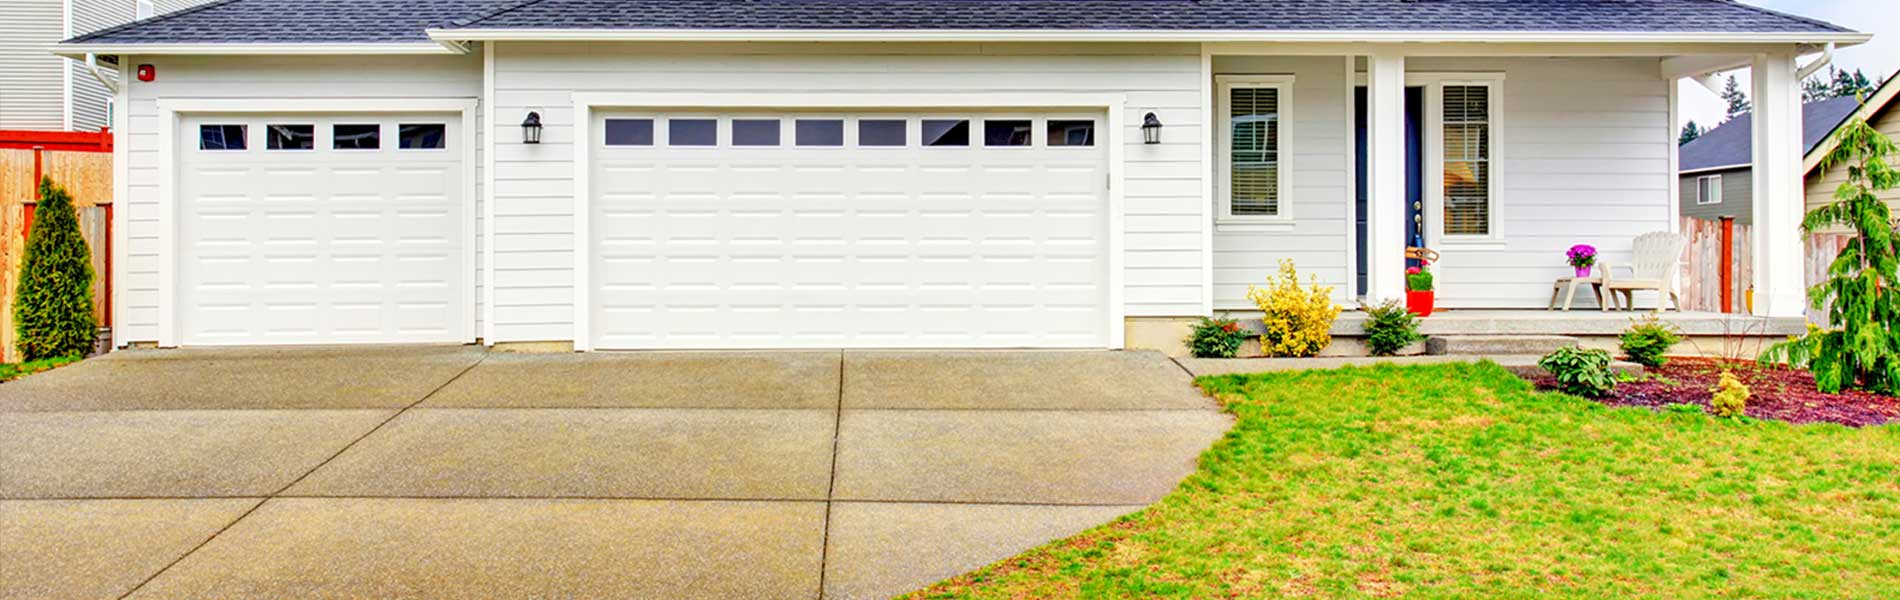 Garage Door 24 Hours Repairs, Marlton, NJ 856-533-5924